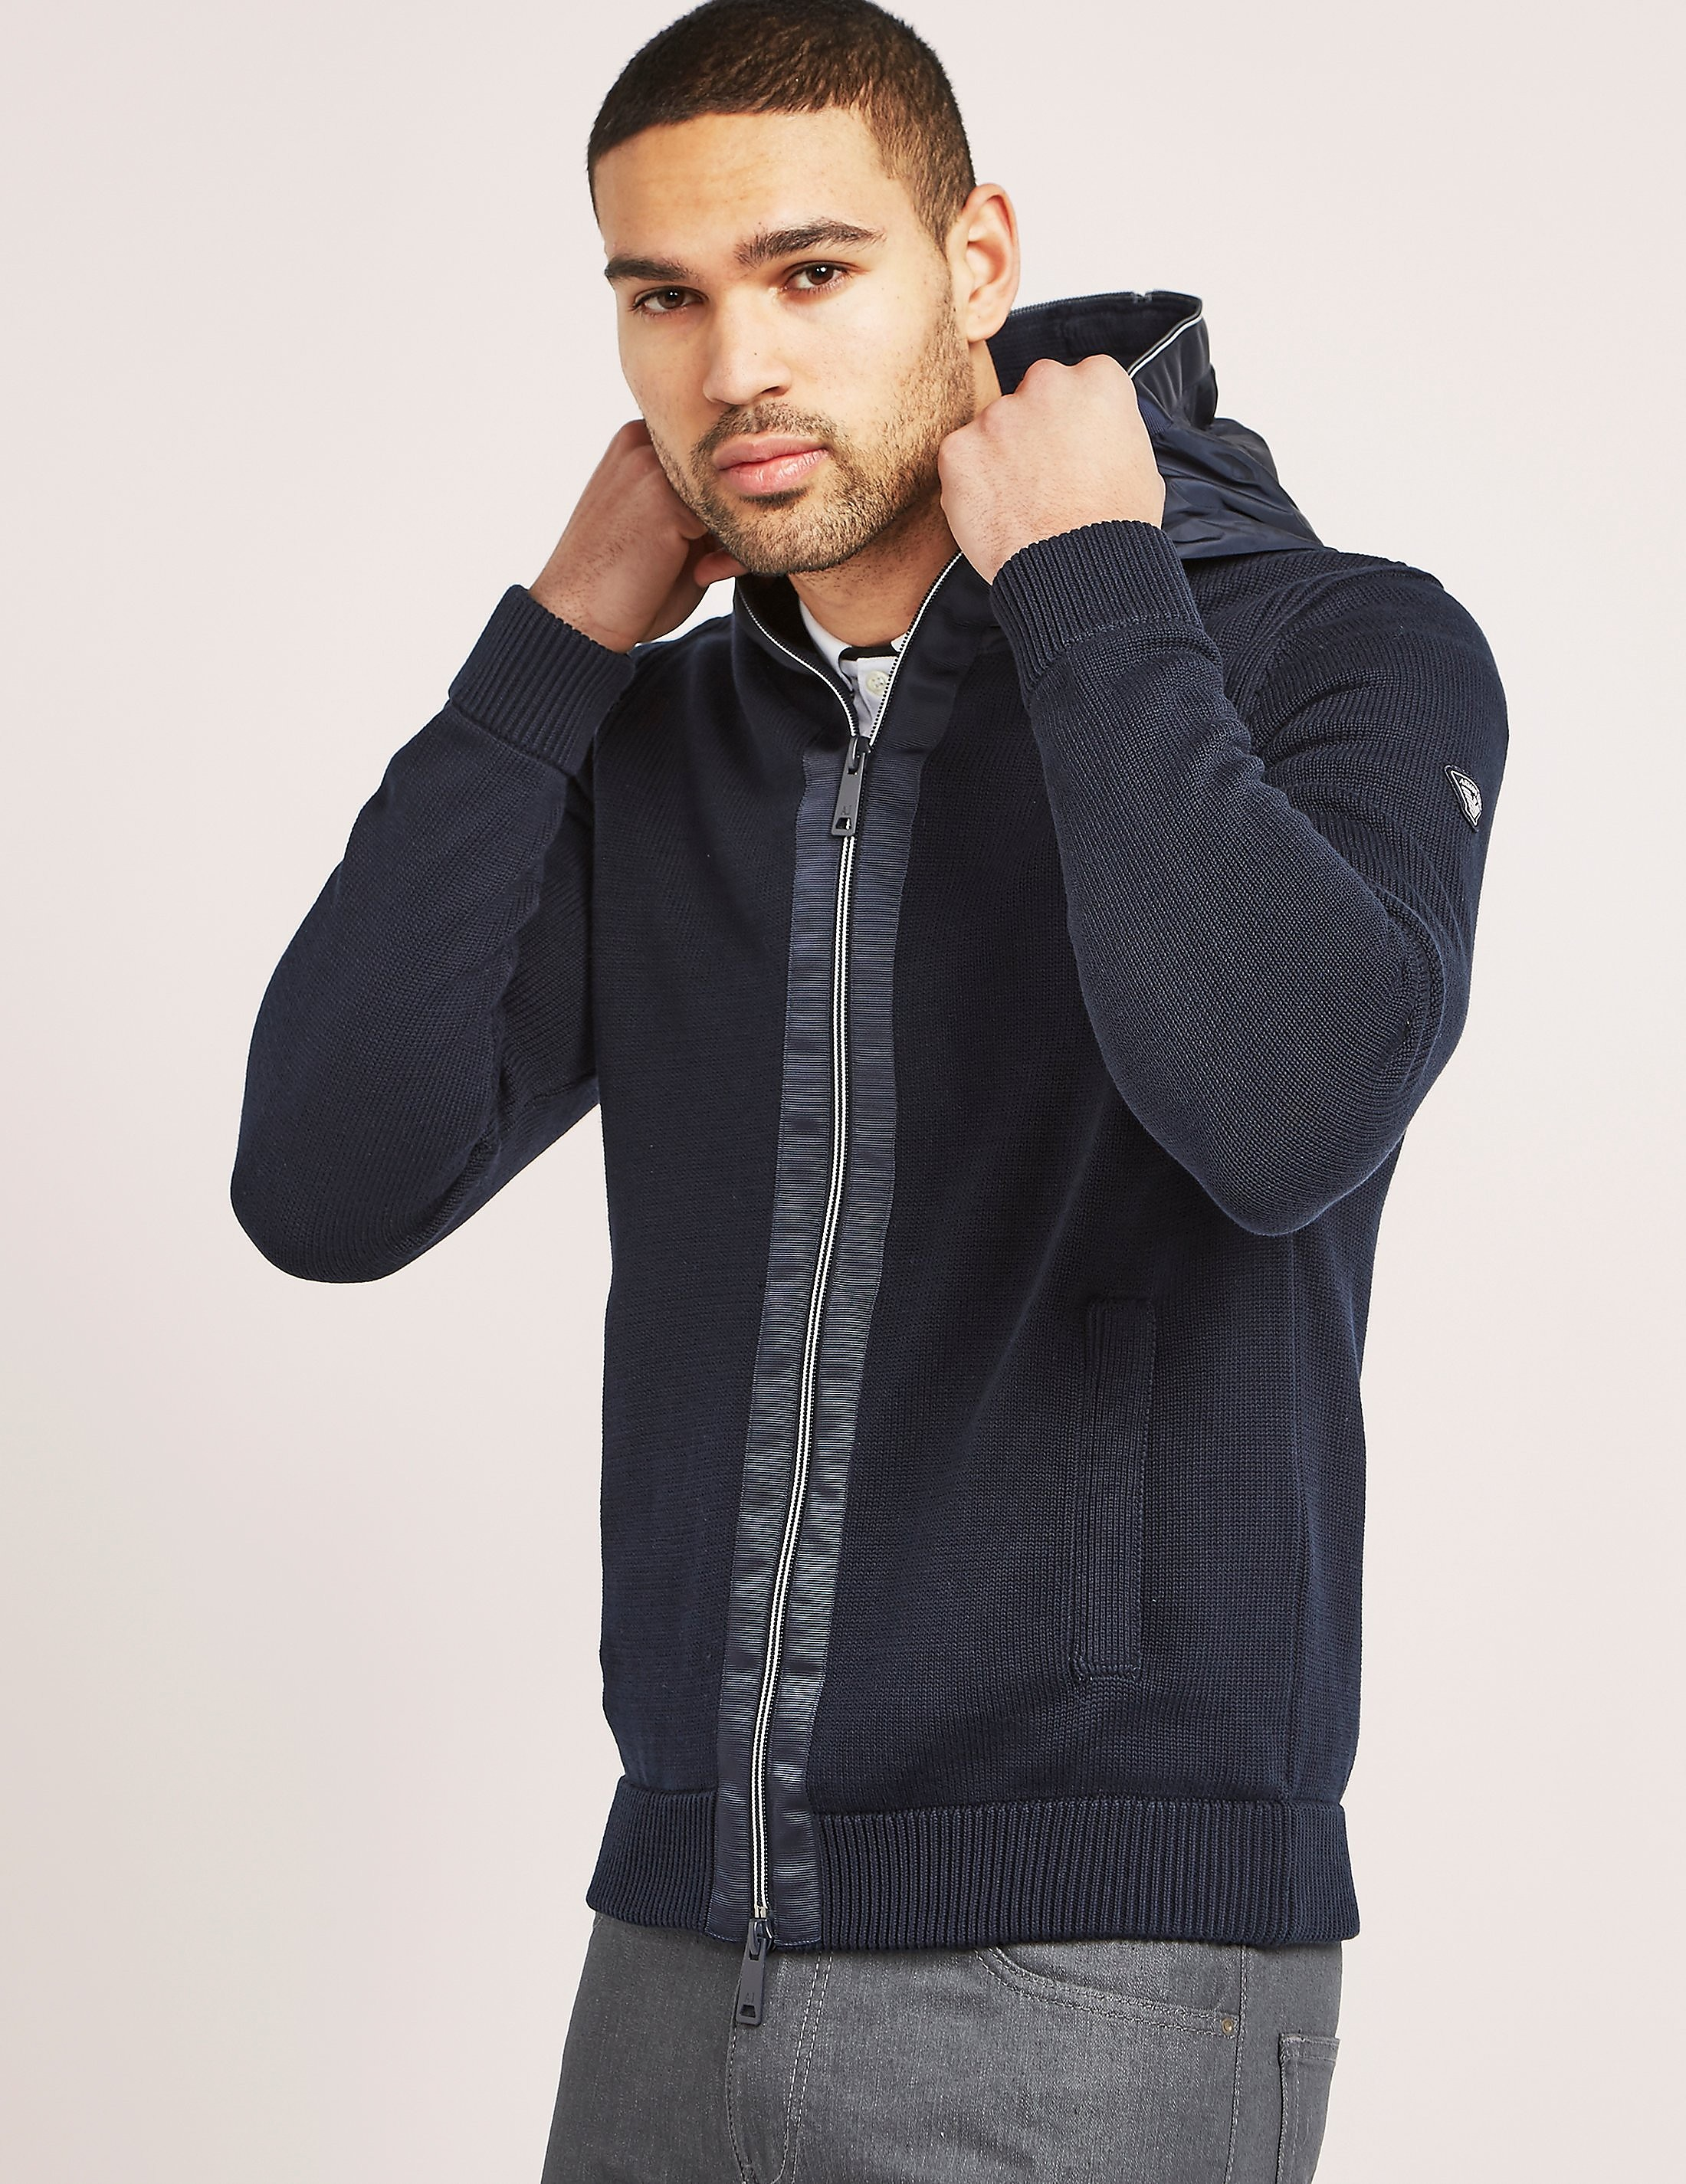 Armani Jeans Full Zip Knit